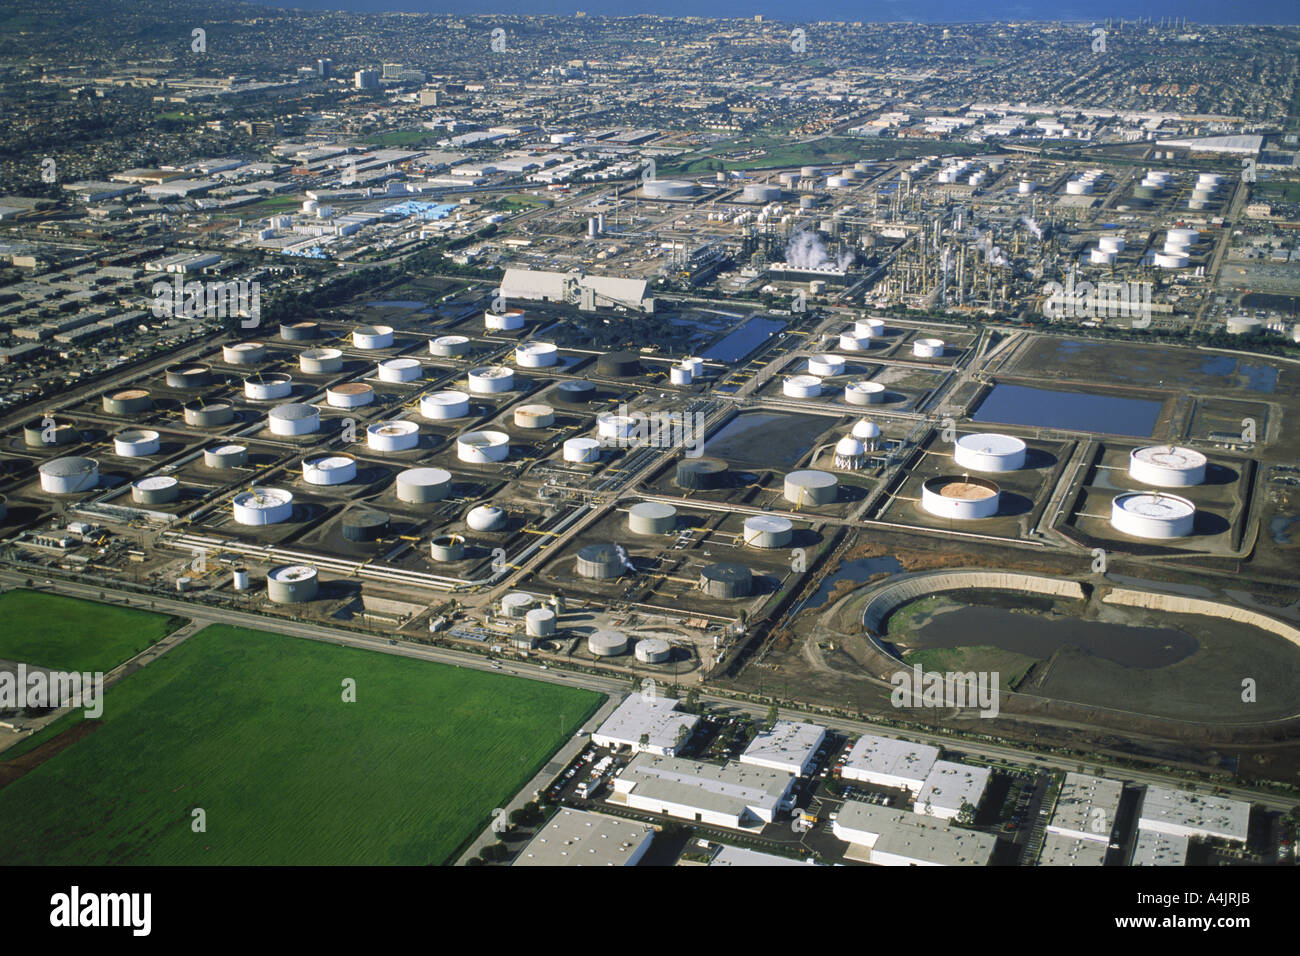 Aerial View Of Oil Refinery And Storage Tanks In Torrance, California